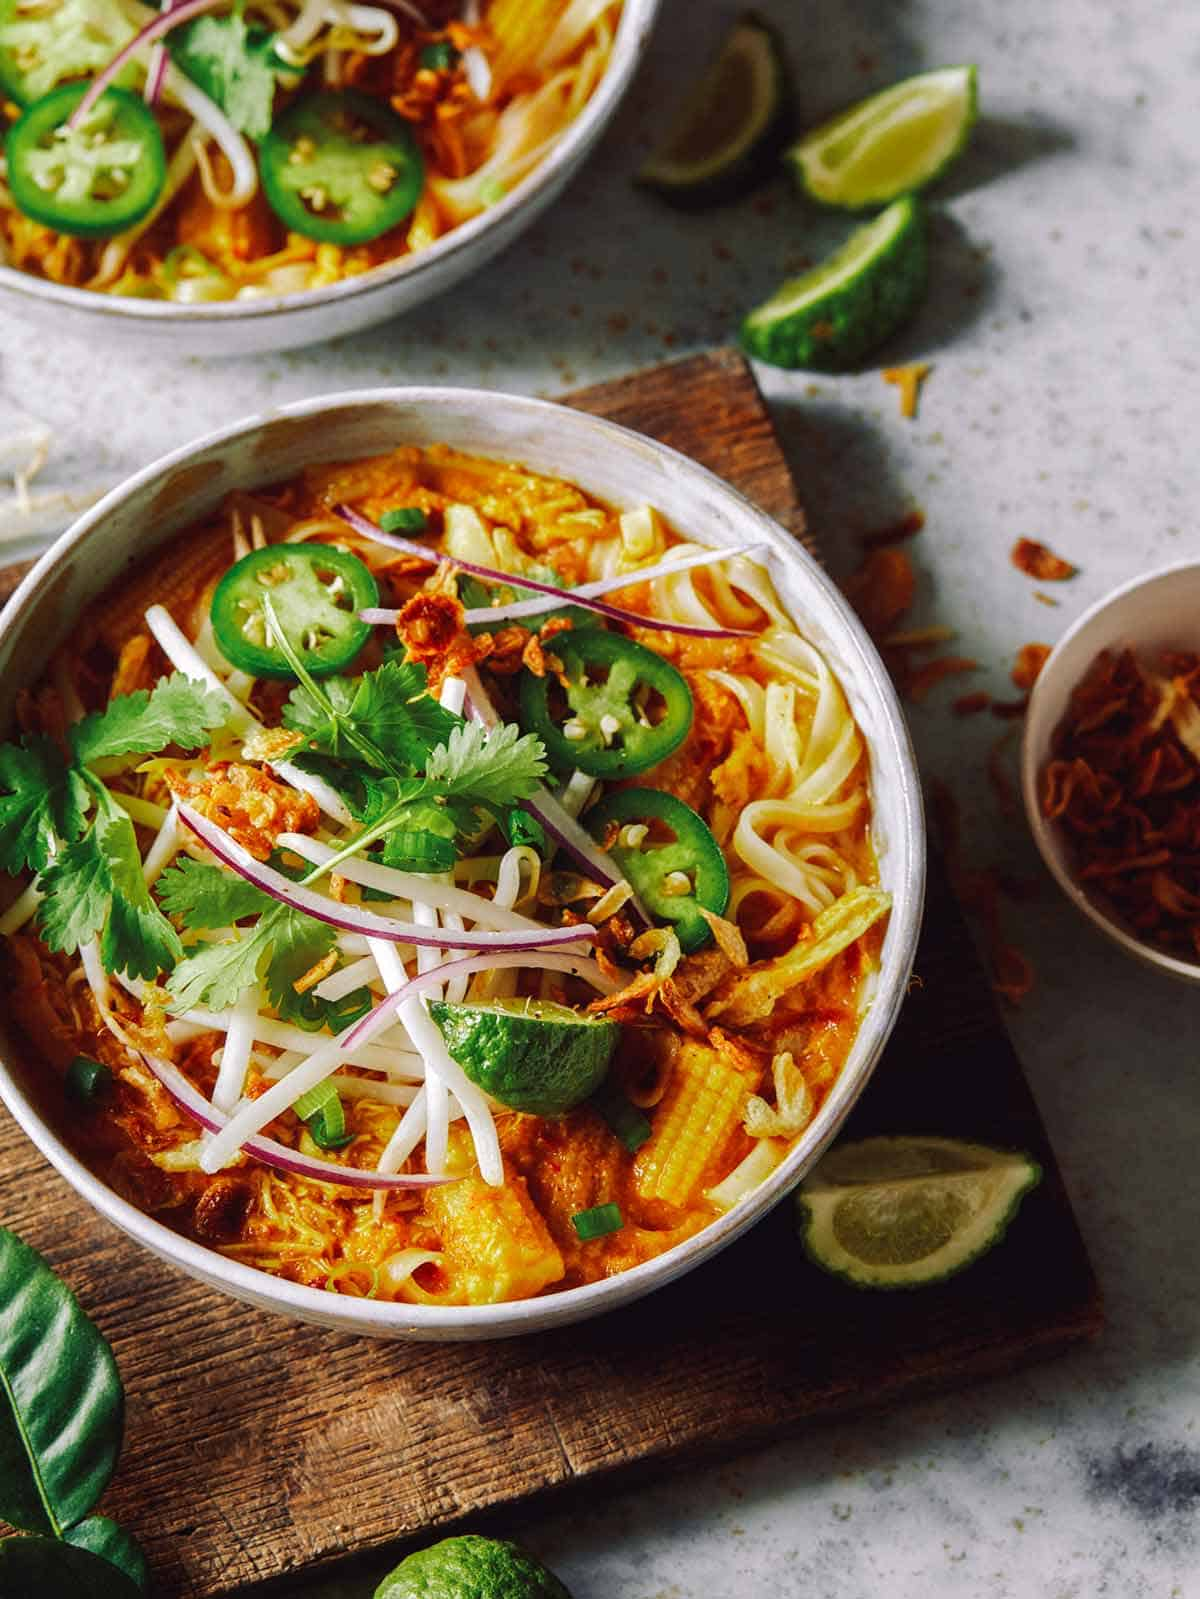 Spicy chicken laksa in two bowls with onions on the side.